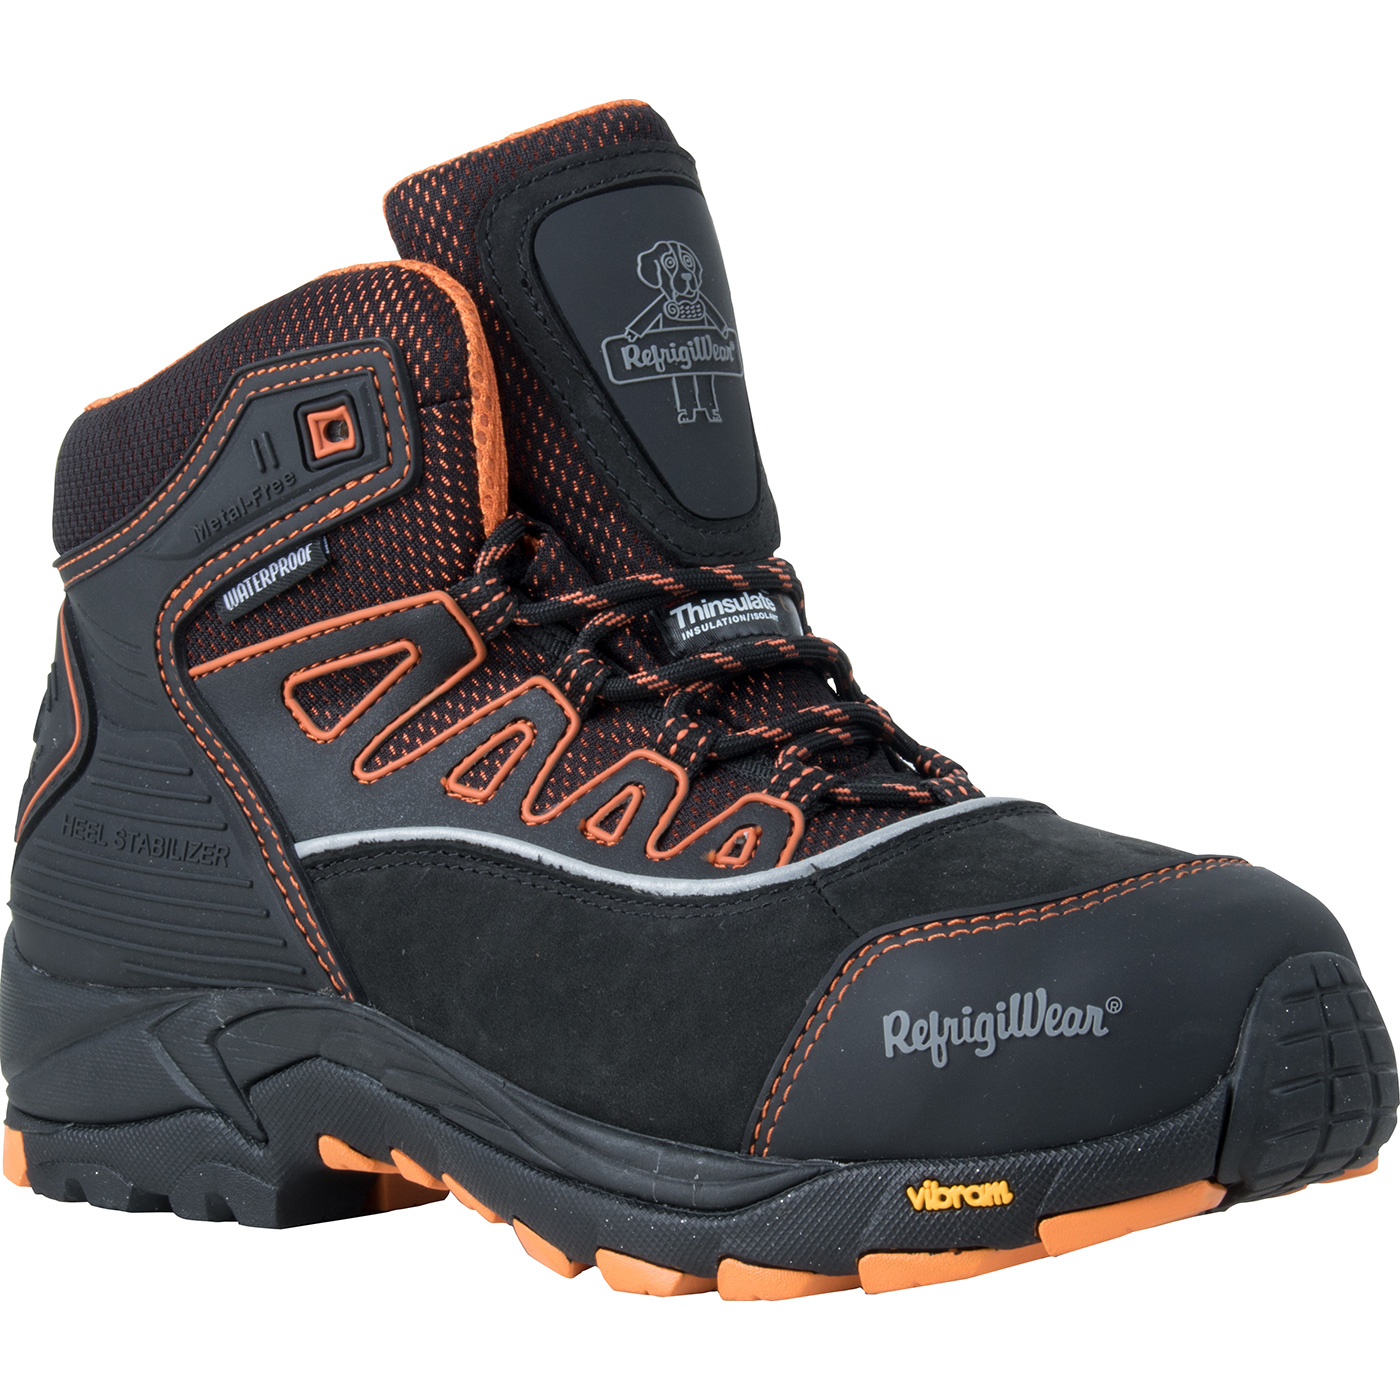 d41f45db40b RefrigiWear PolarForce™ Men's 6 inch Composite Toe 800G Insulated  Waterproof Work Hiker